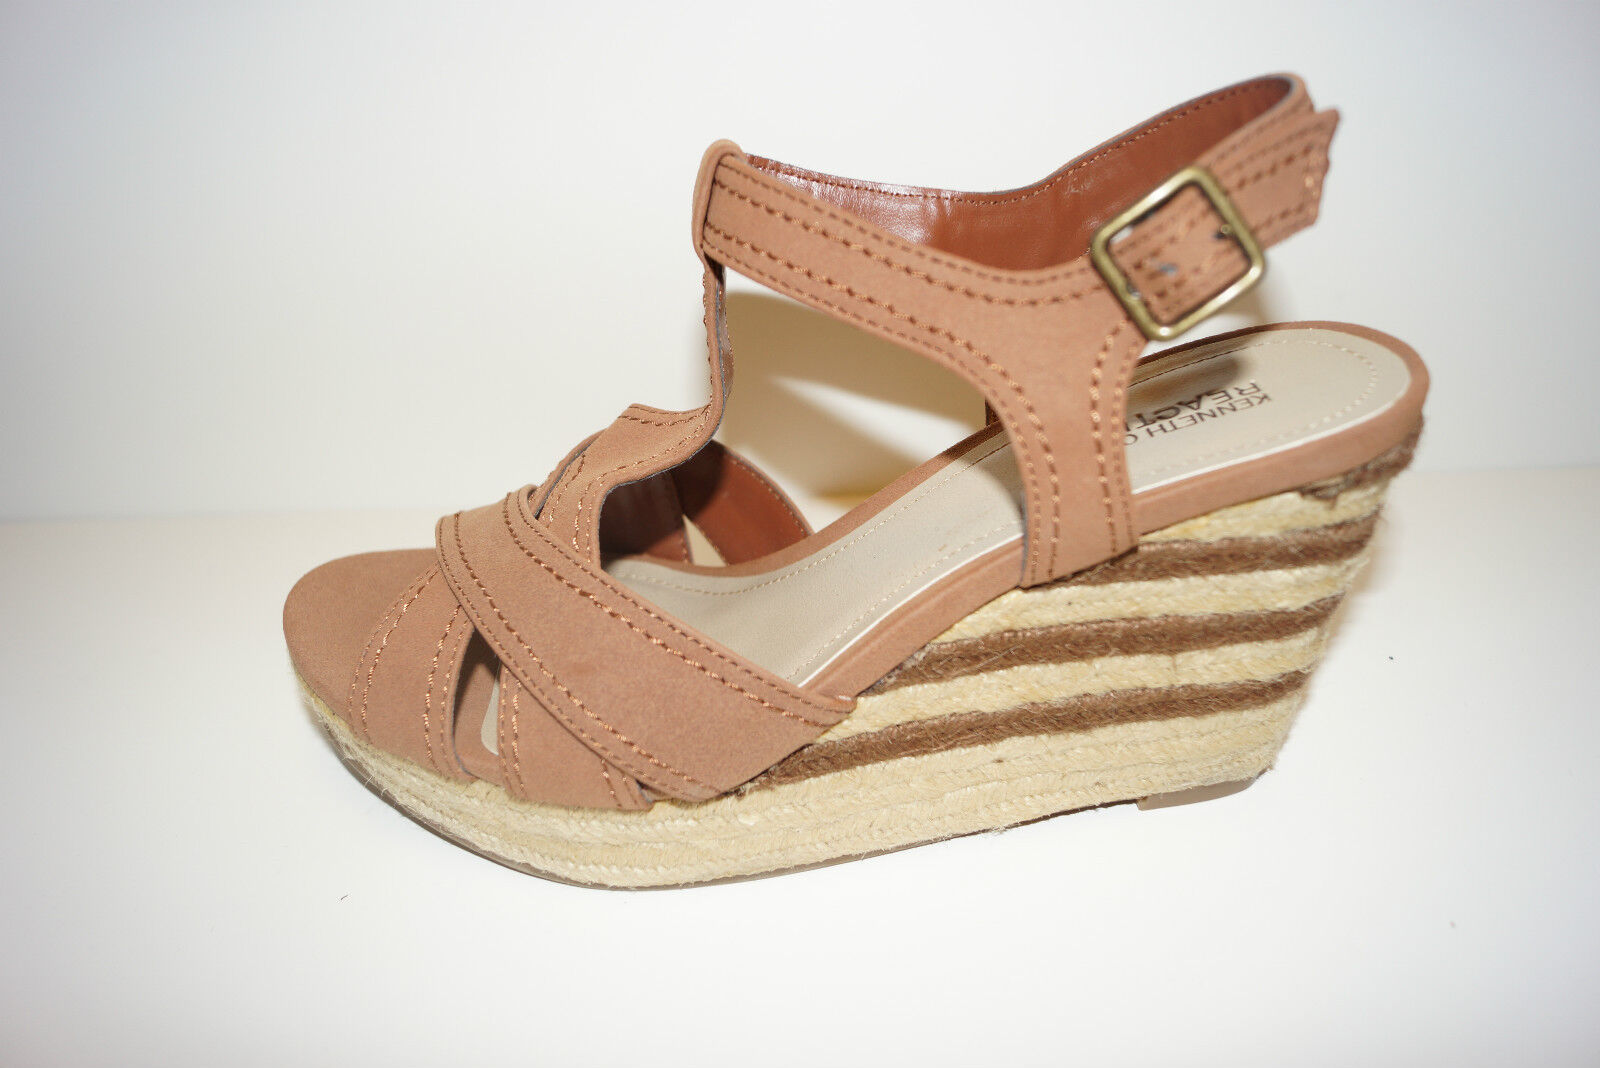 Women's Kenneth Cole Reaction Kiss Me Doll Wedge Sienna Sandals Brown Size 8.5